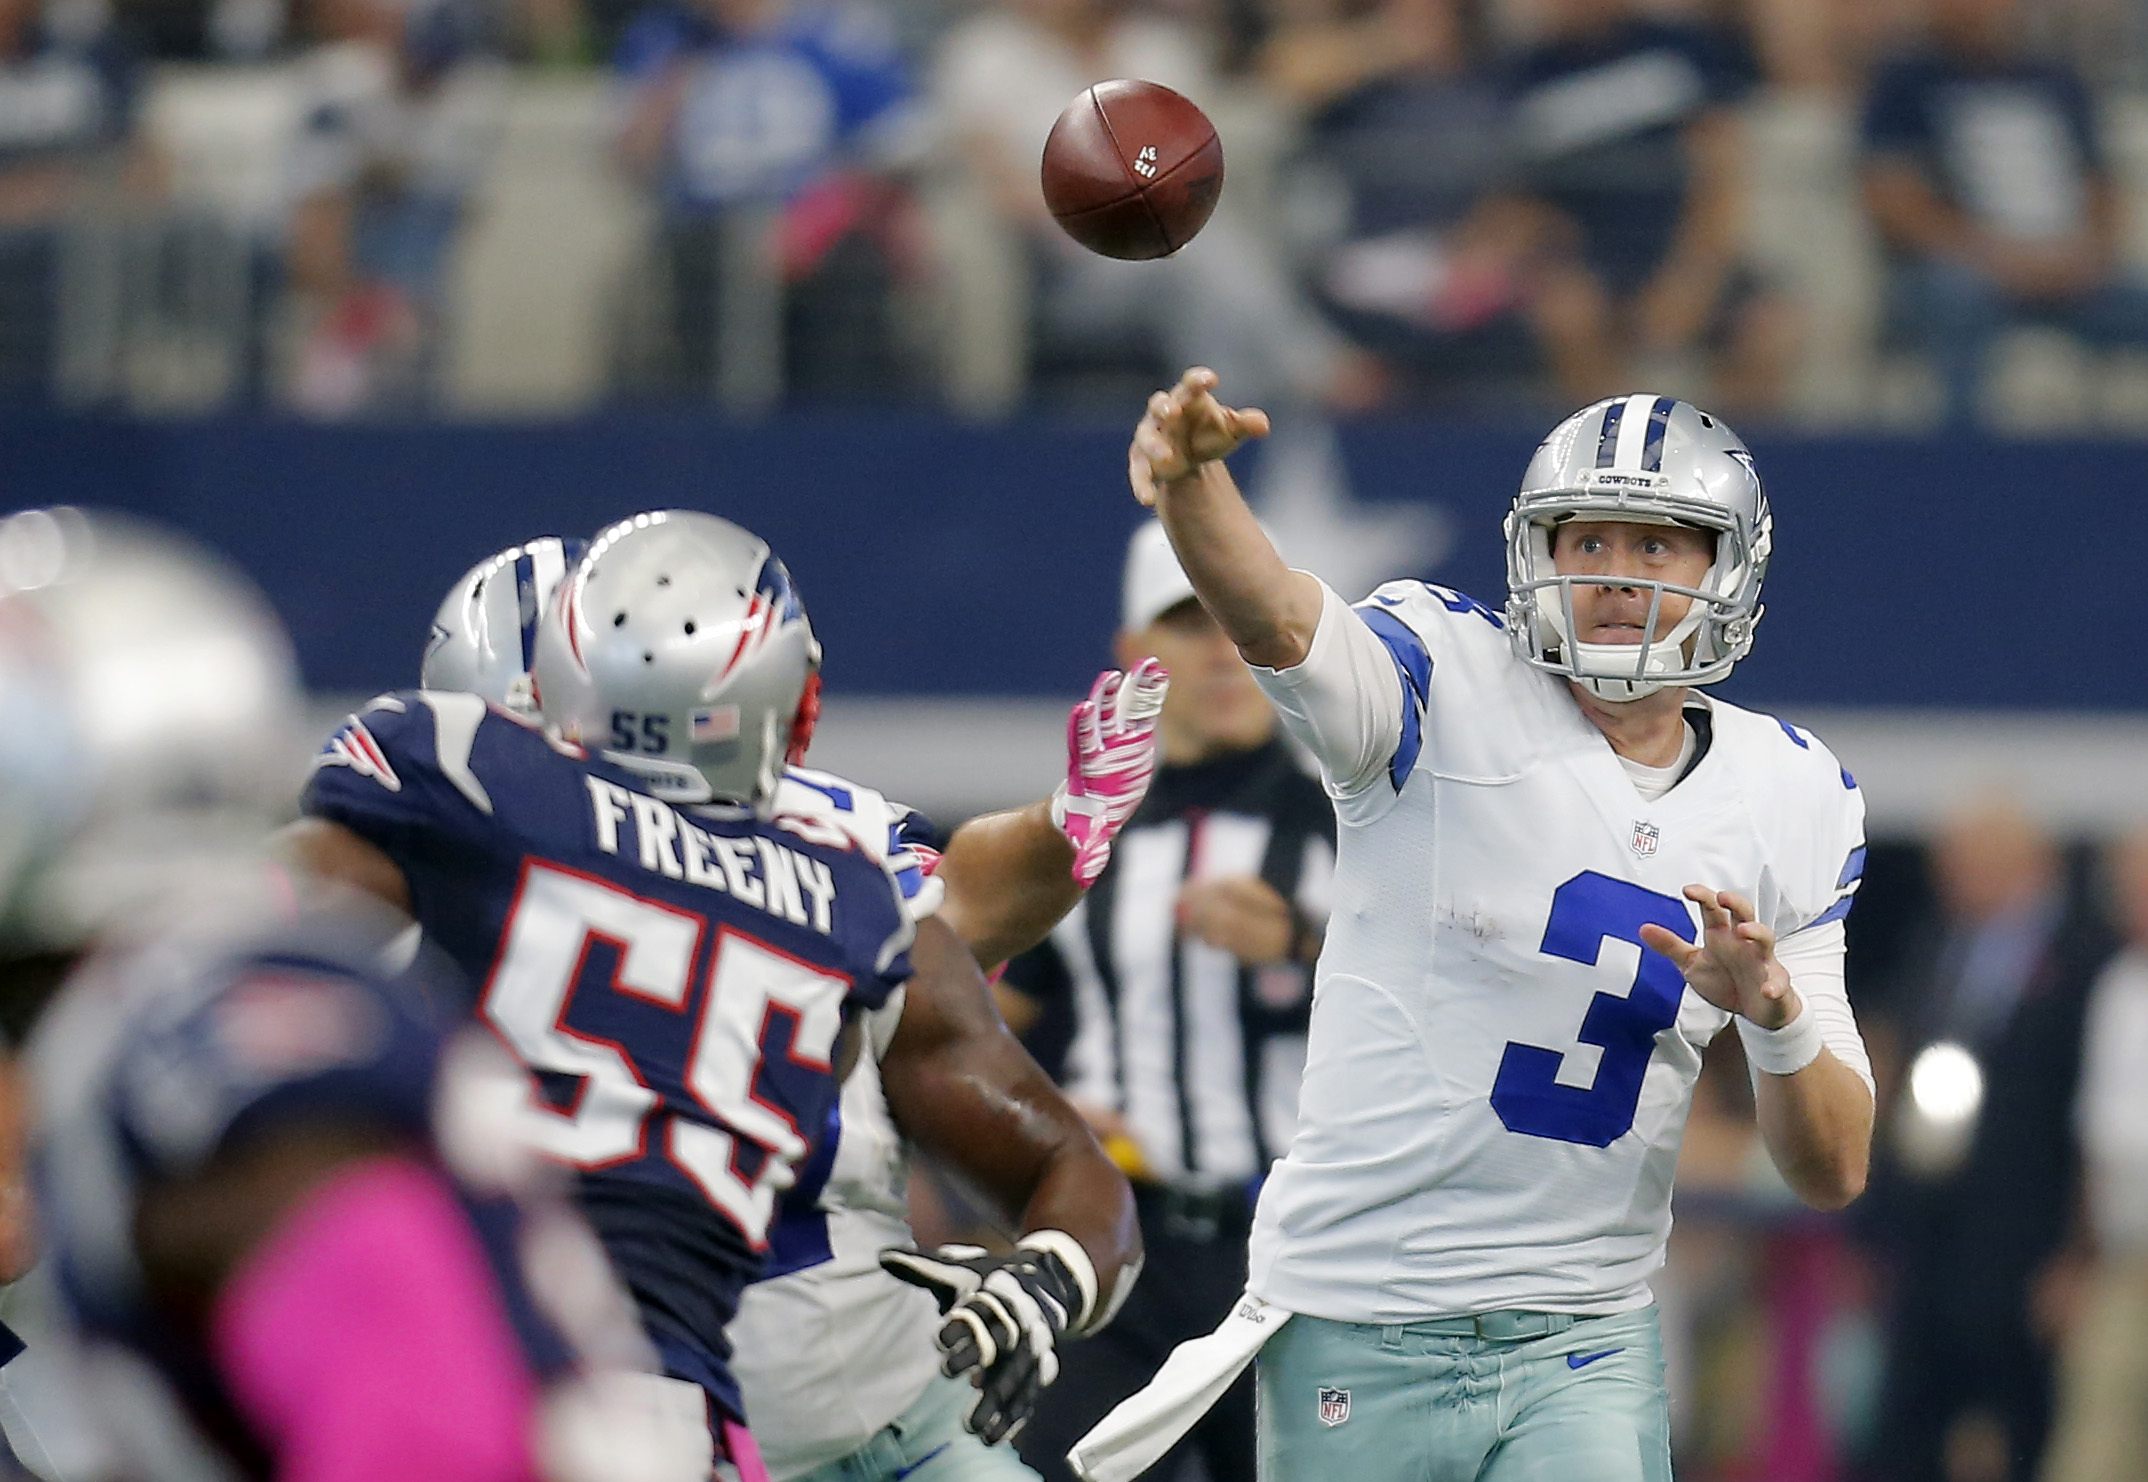 FILE - In this Oct. 11, 2015, file photo, Dallas Cowboys' Brandon Weeden (3) throws against the New England Patriots during the first quarter of an NFL football game,  in Arlington, Texas. The list of key players injured this season would make even some c